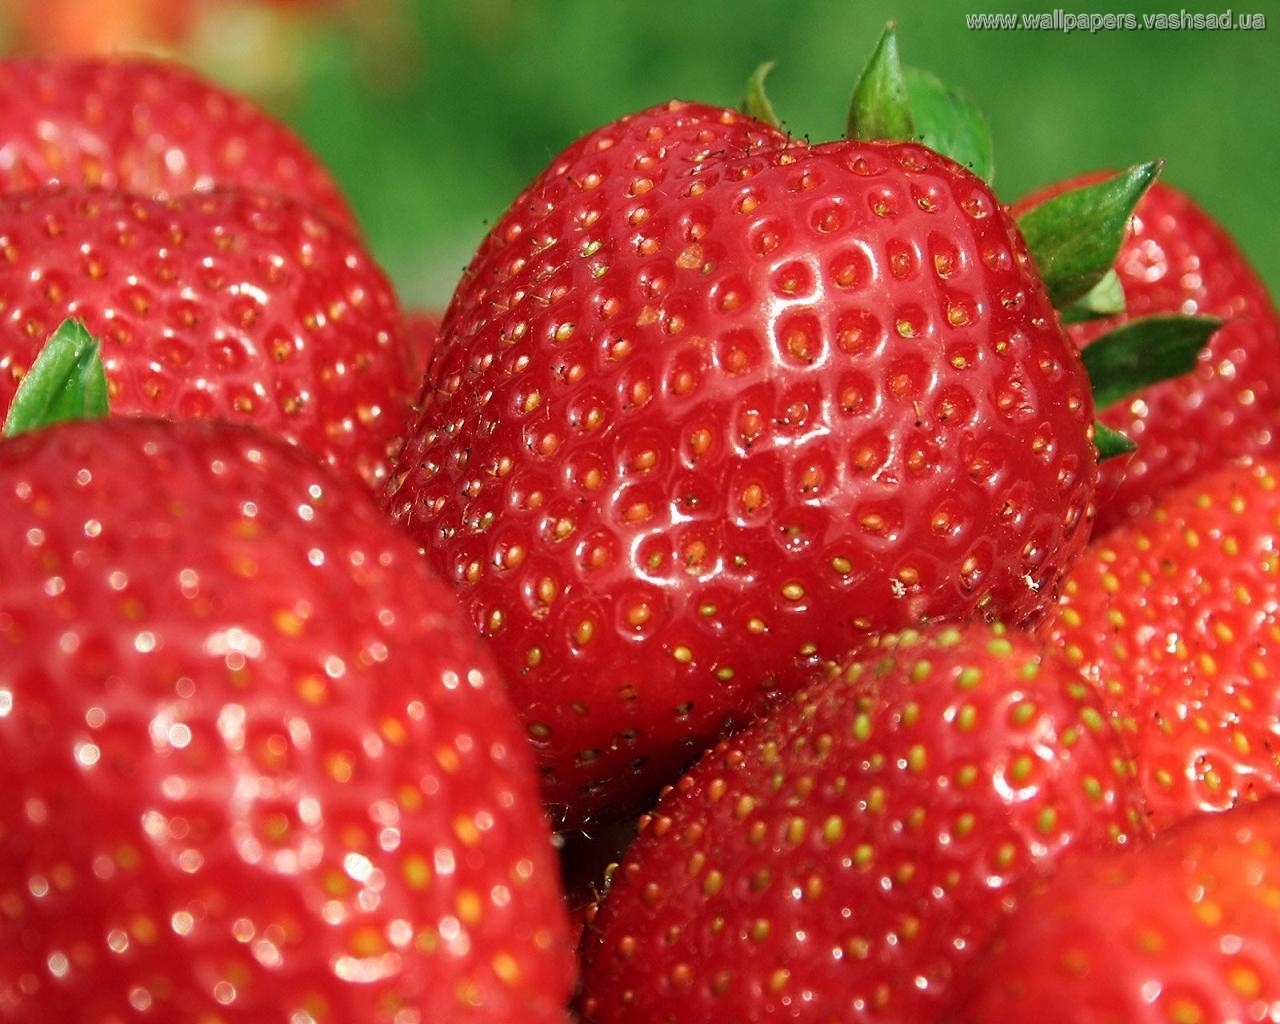 6432 download wallpaper Food, Strawberry, Berries screensavers and pictures for free